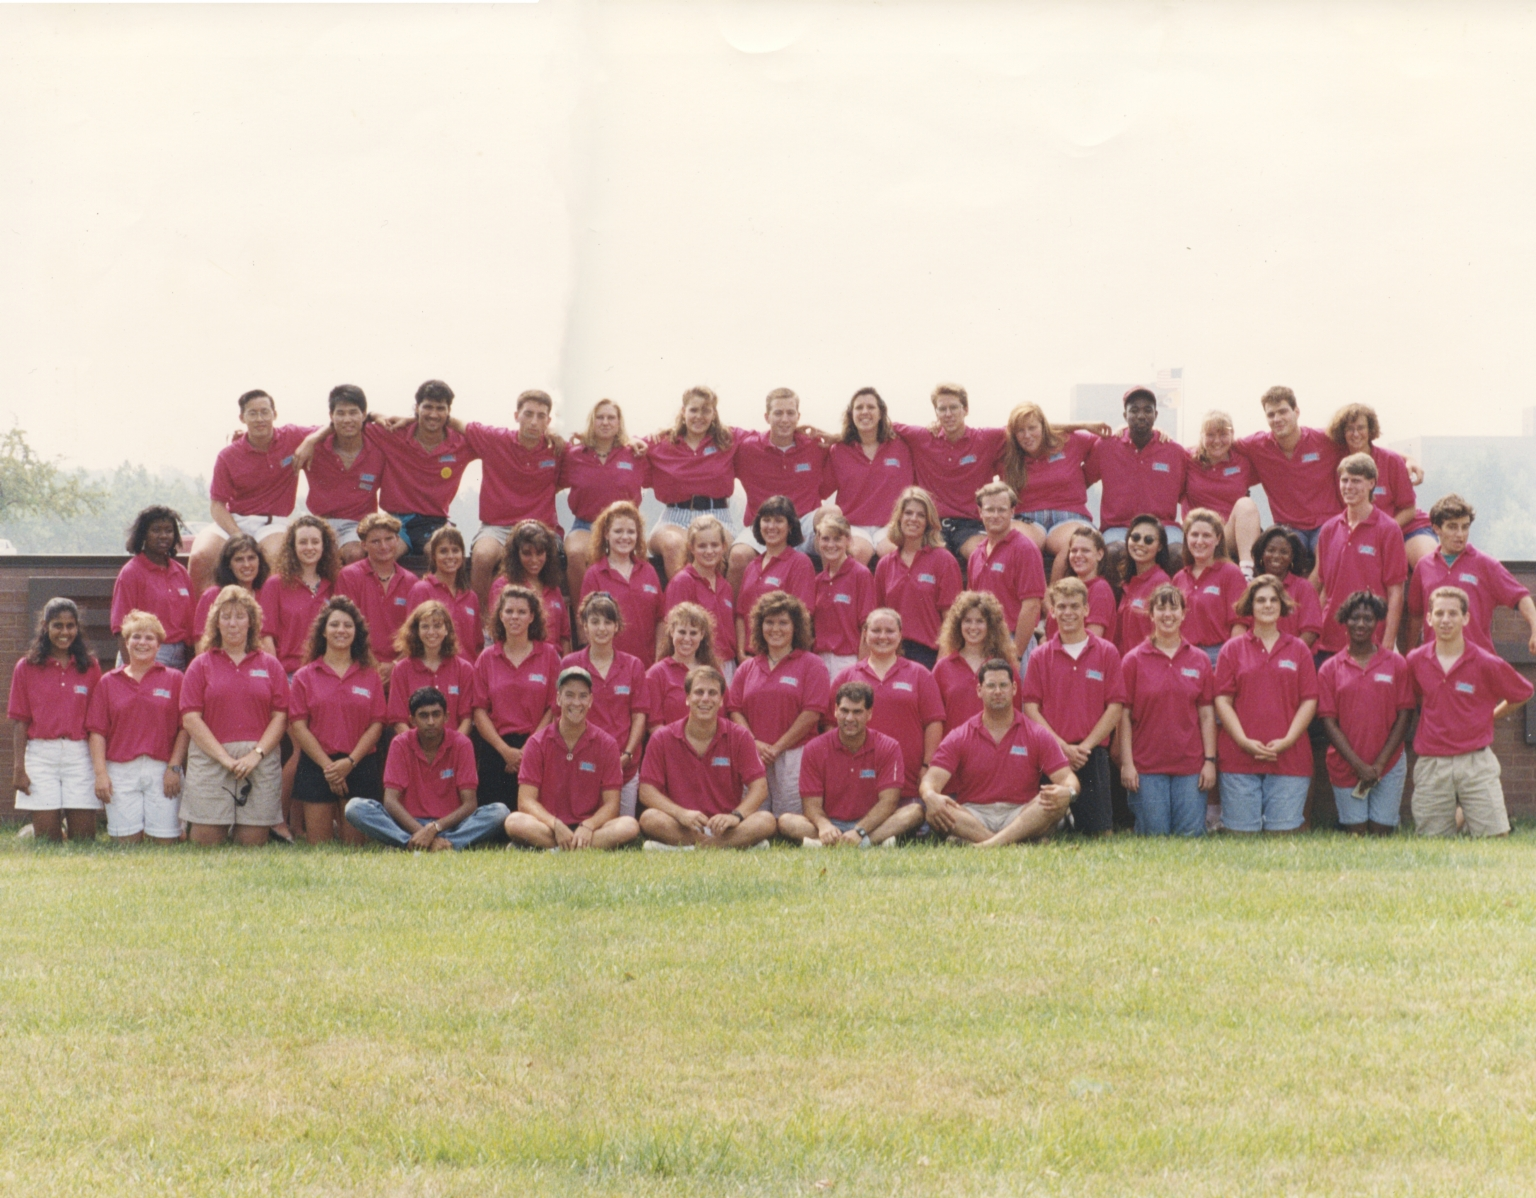 1992 Student Orientation Services Leaders